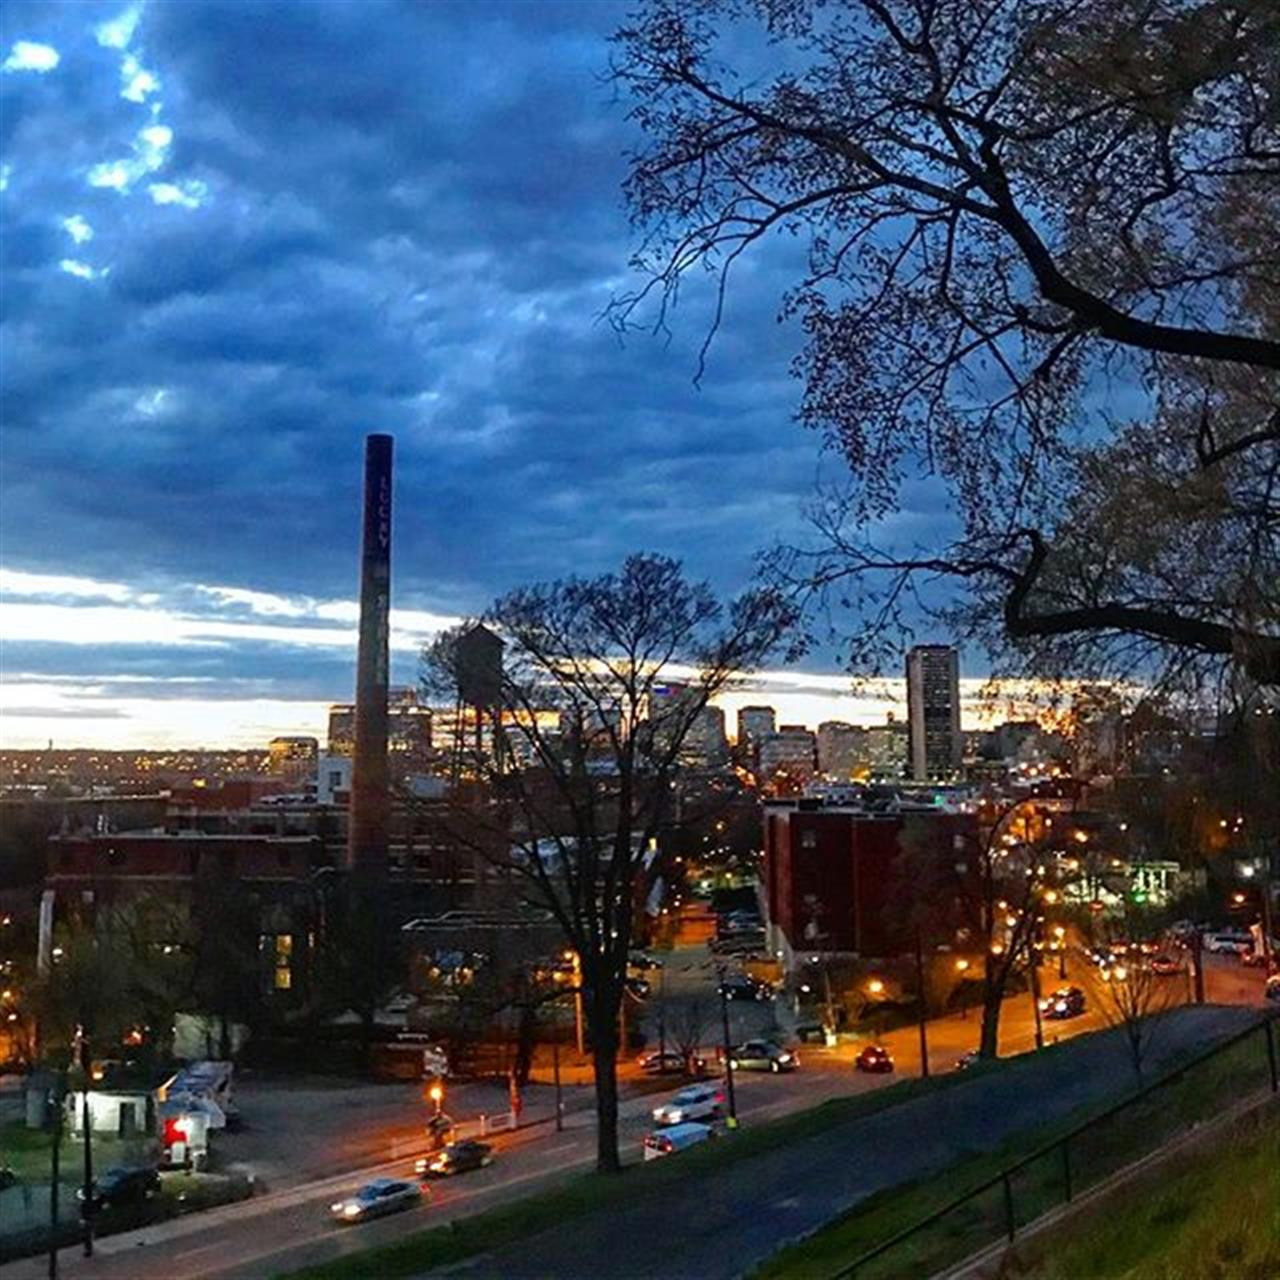 RVAÔÿüÔÿü #realestate #cloud #city #skyline #winter #joynerfineproperties #jf #livelovelocal #libbyhill #leadingrelocal #letsmoverva #love #park #city #va #virginia #photography #realtor #realestateagent #lights